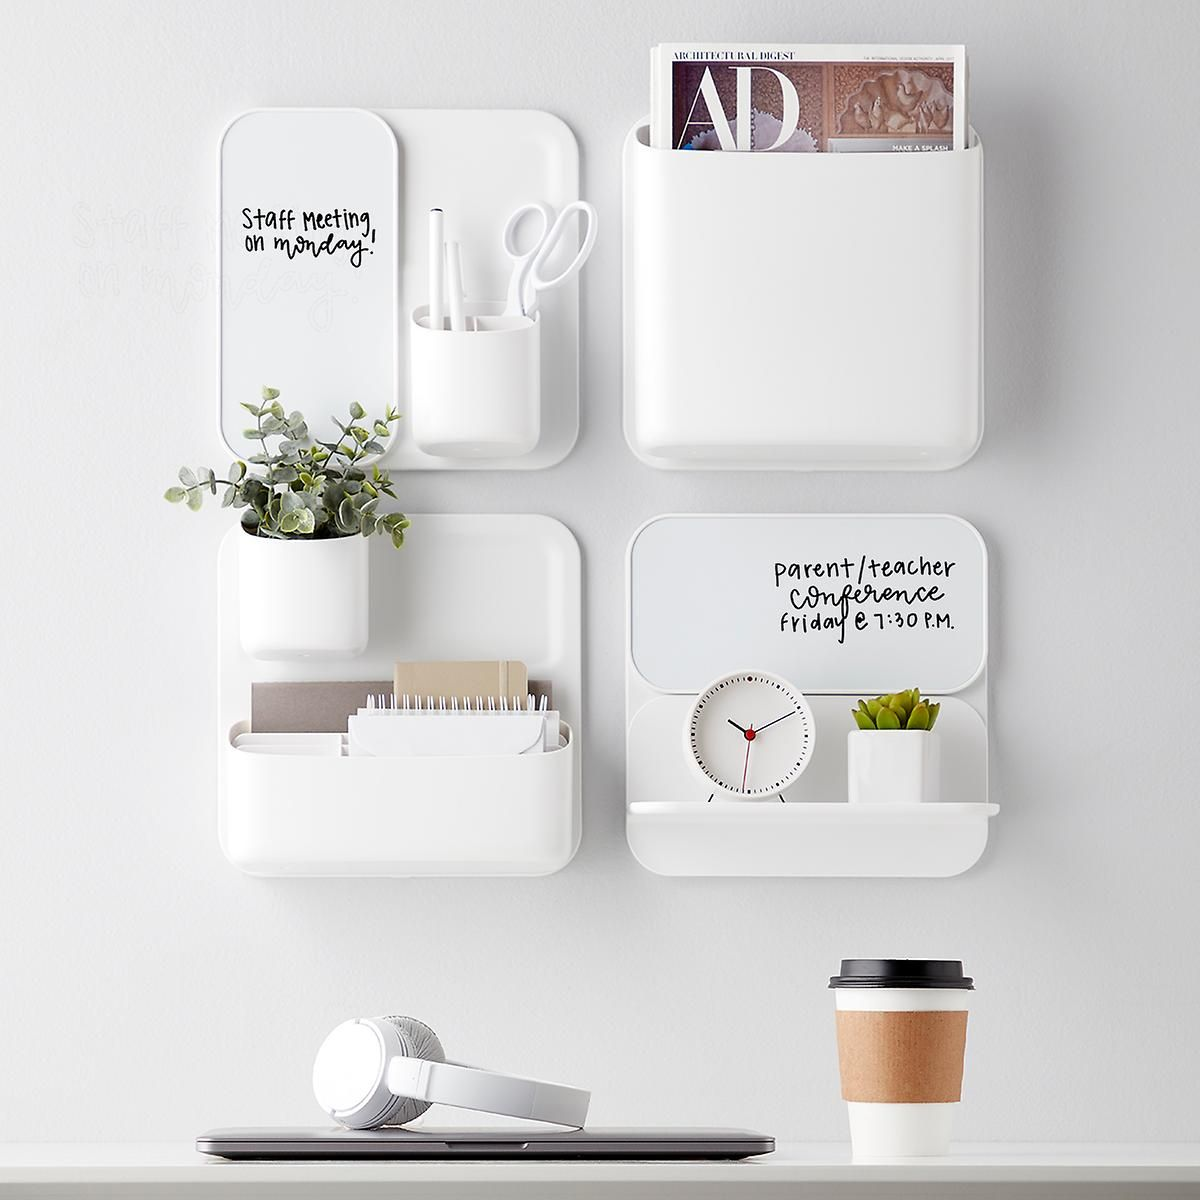 Perch Magnetic Modular System Components Home Office Decor Wall Organization Office Wall Organization